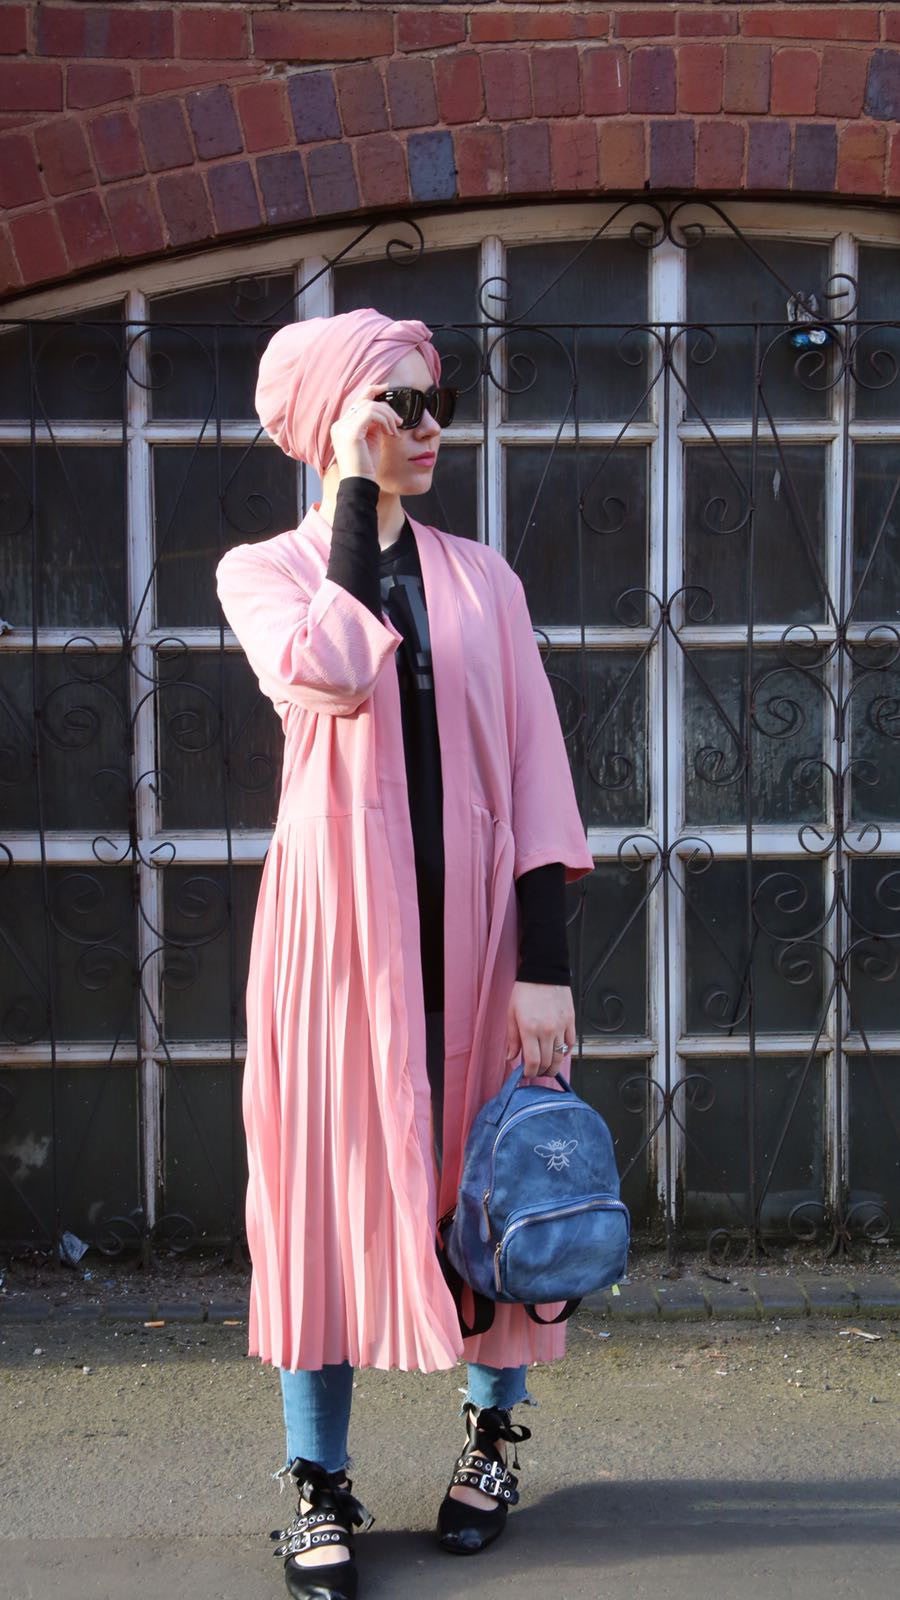 Latest Outfit of the Day from Nabiila Bee featuring our Jana Evening Coat